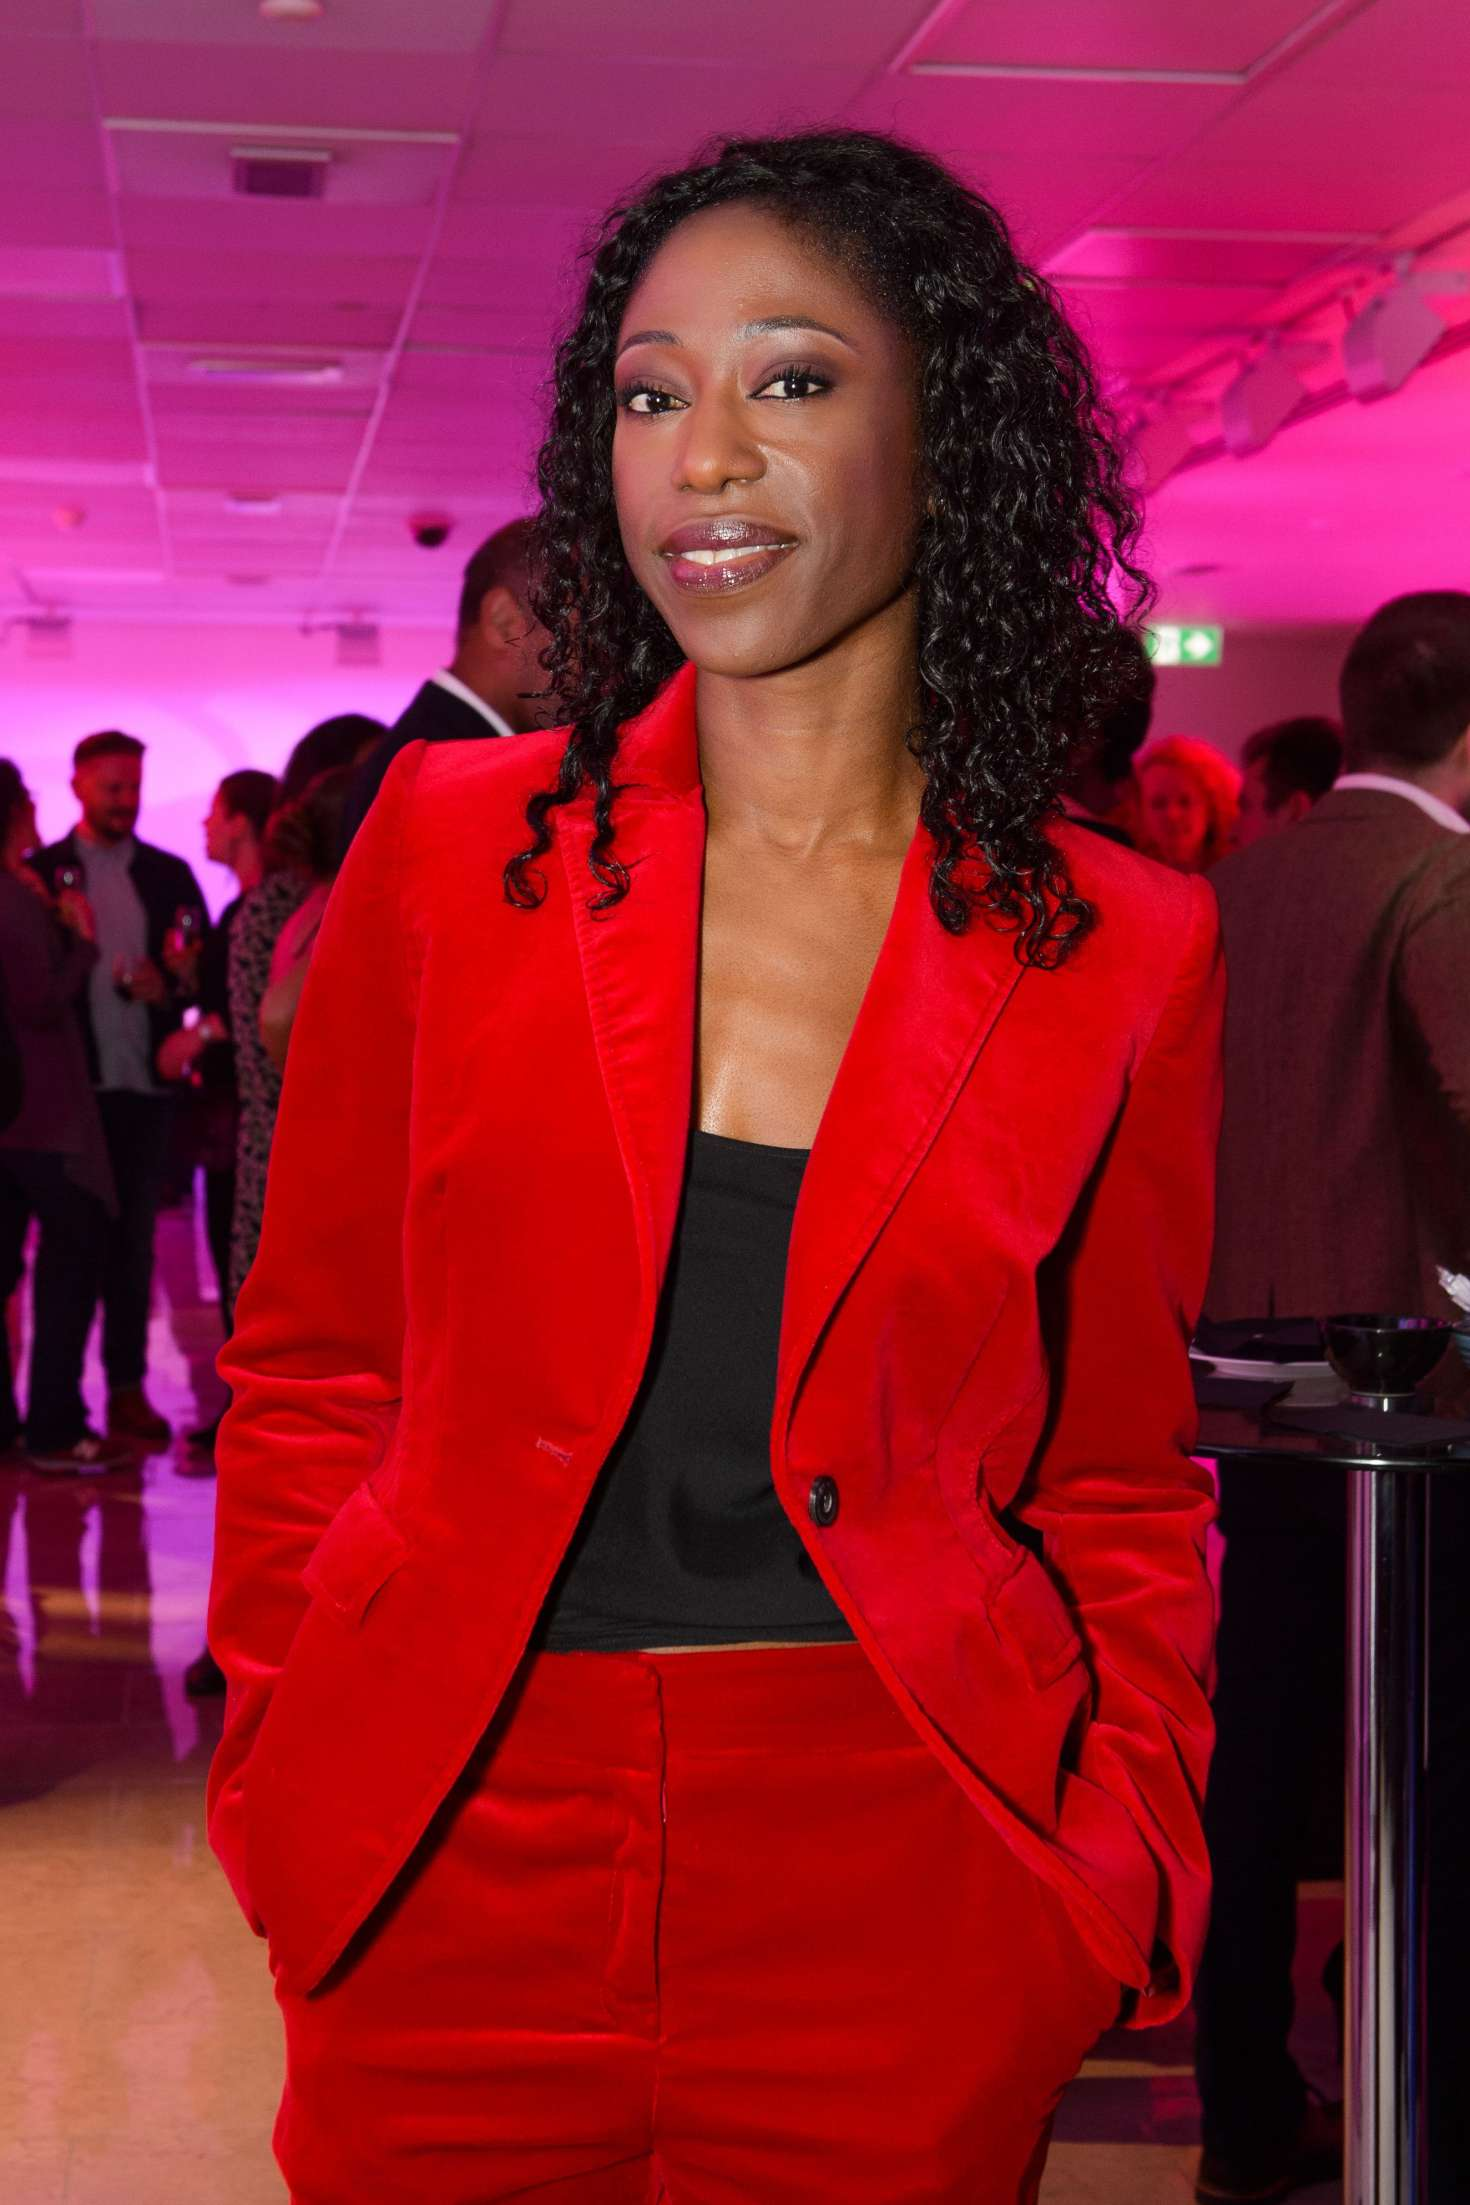 Nikki Amuka-Bird Nikki Amuka-Bird new pictures